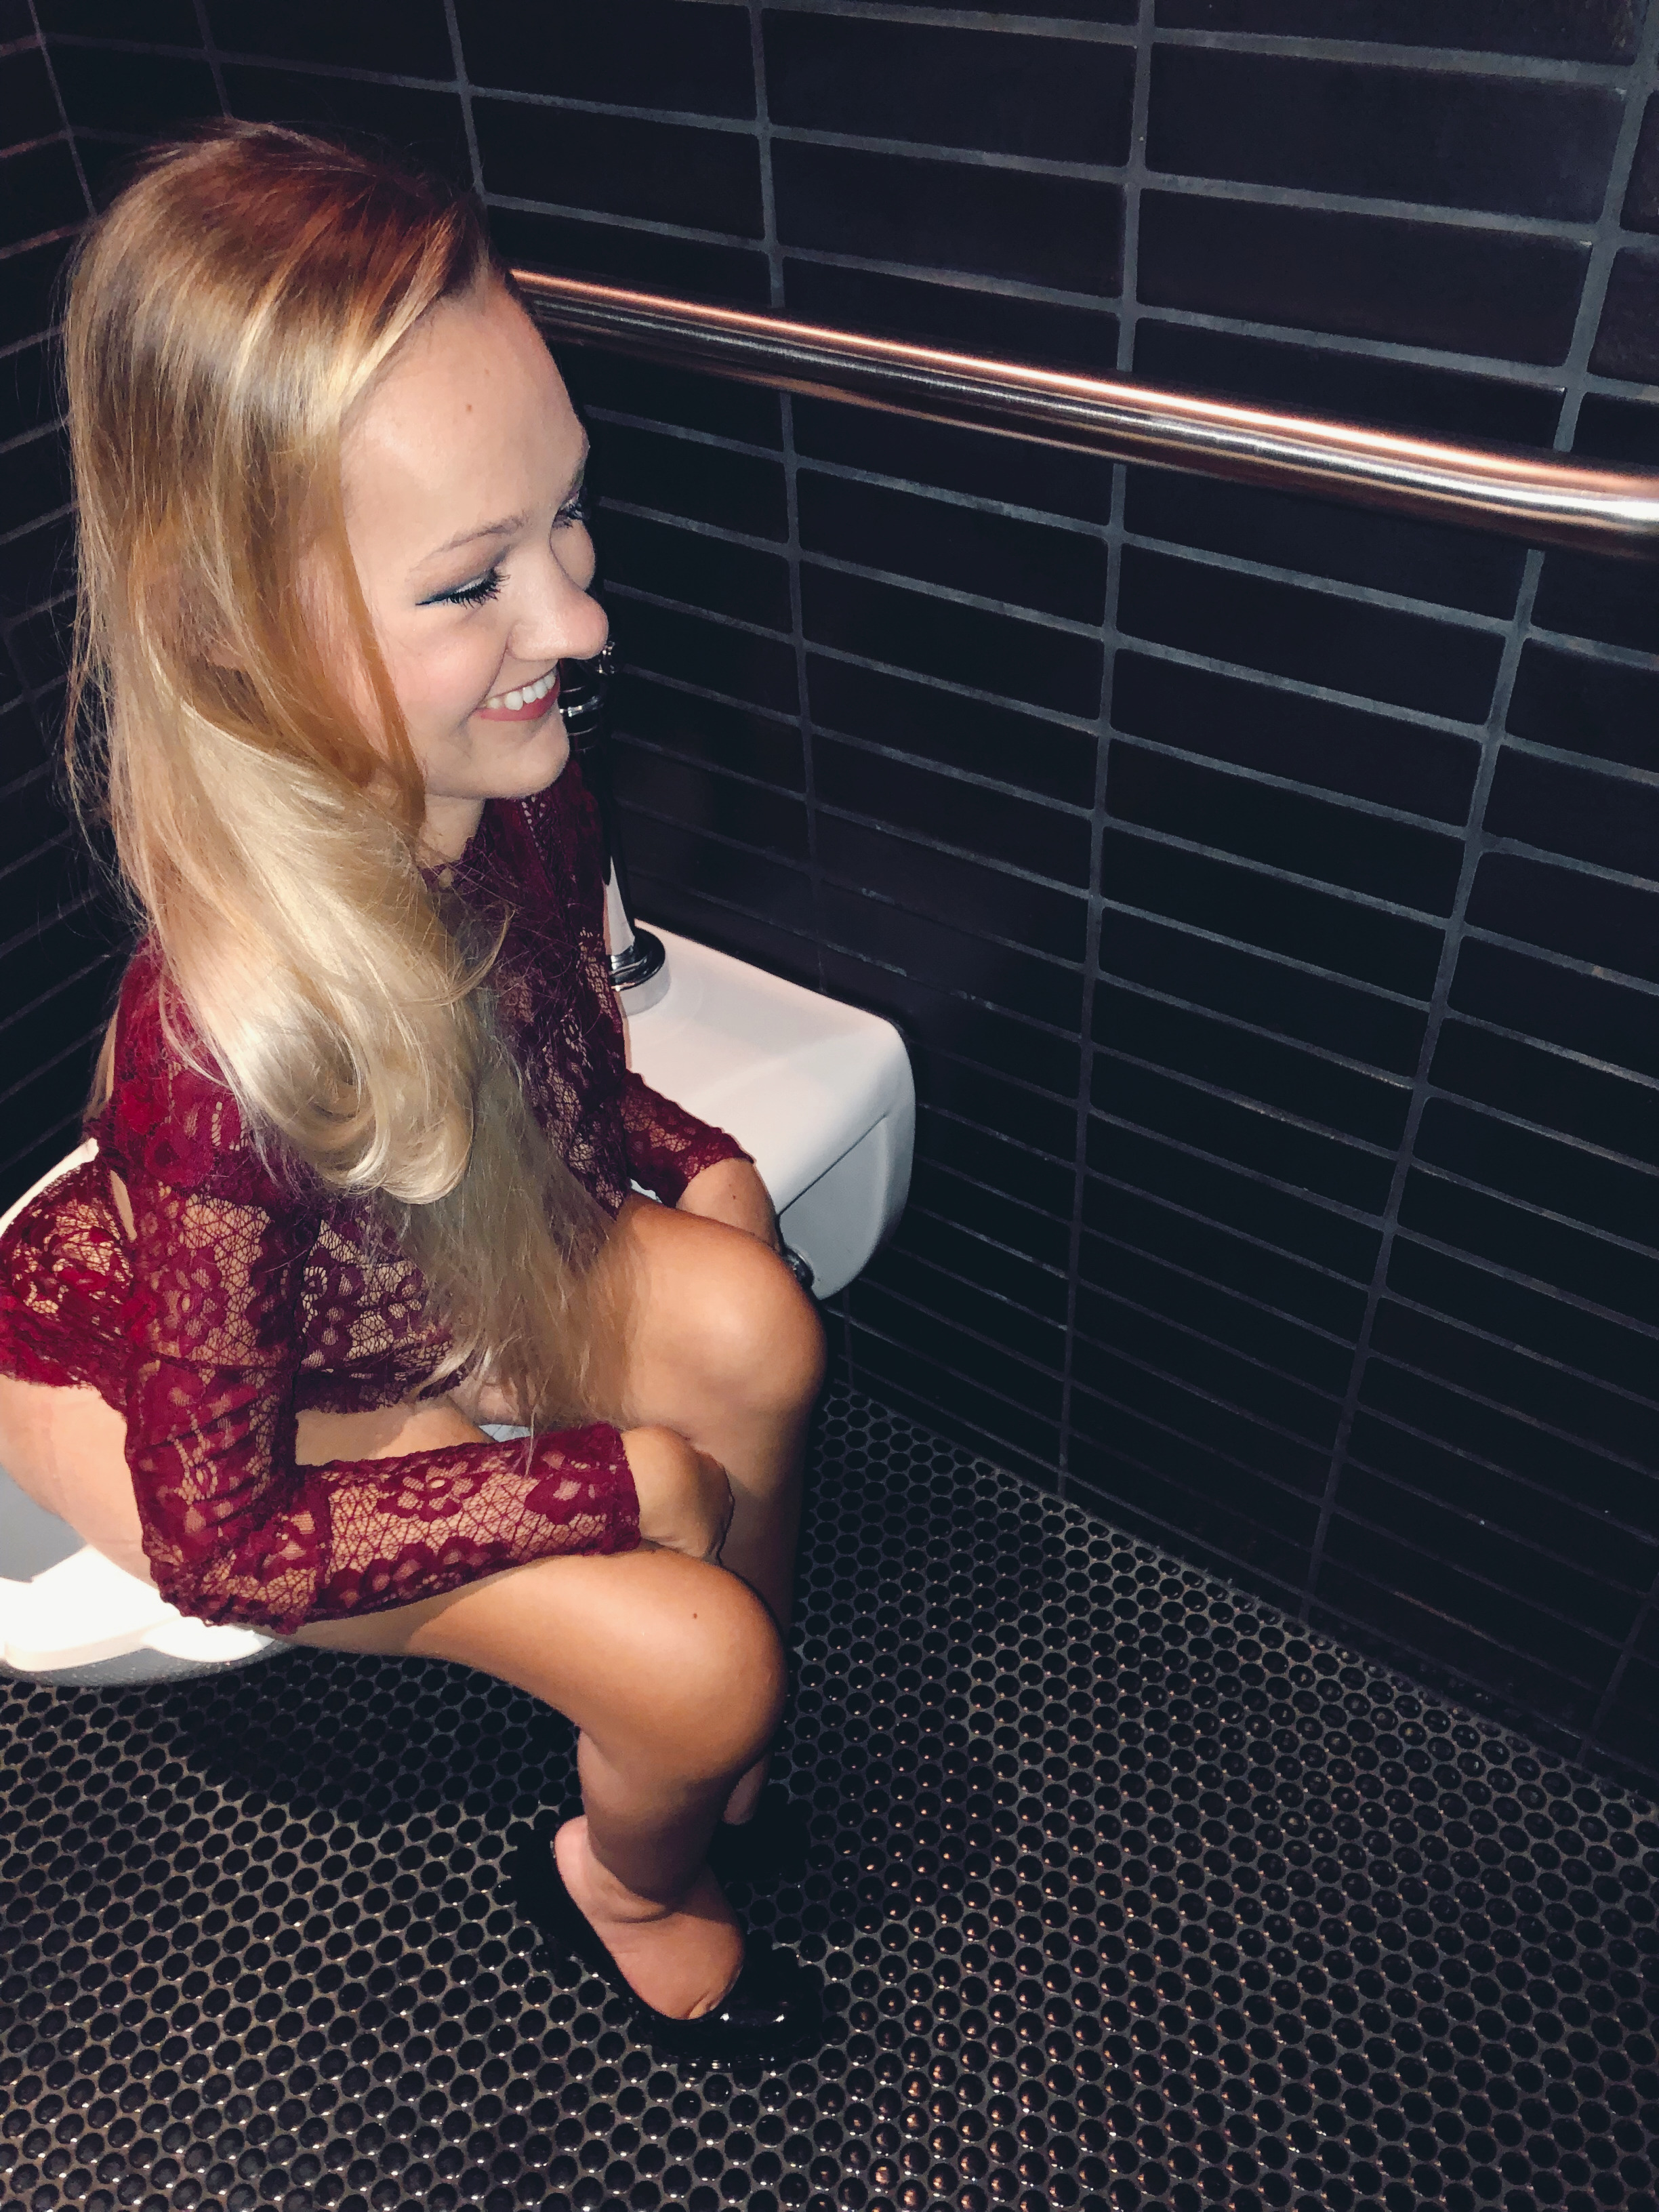 Ass Cute Pics wiping ass is not weird and here's why. — wheelchairrapunzel